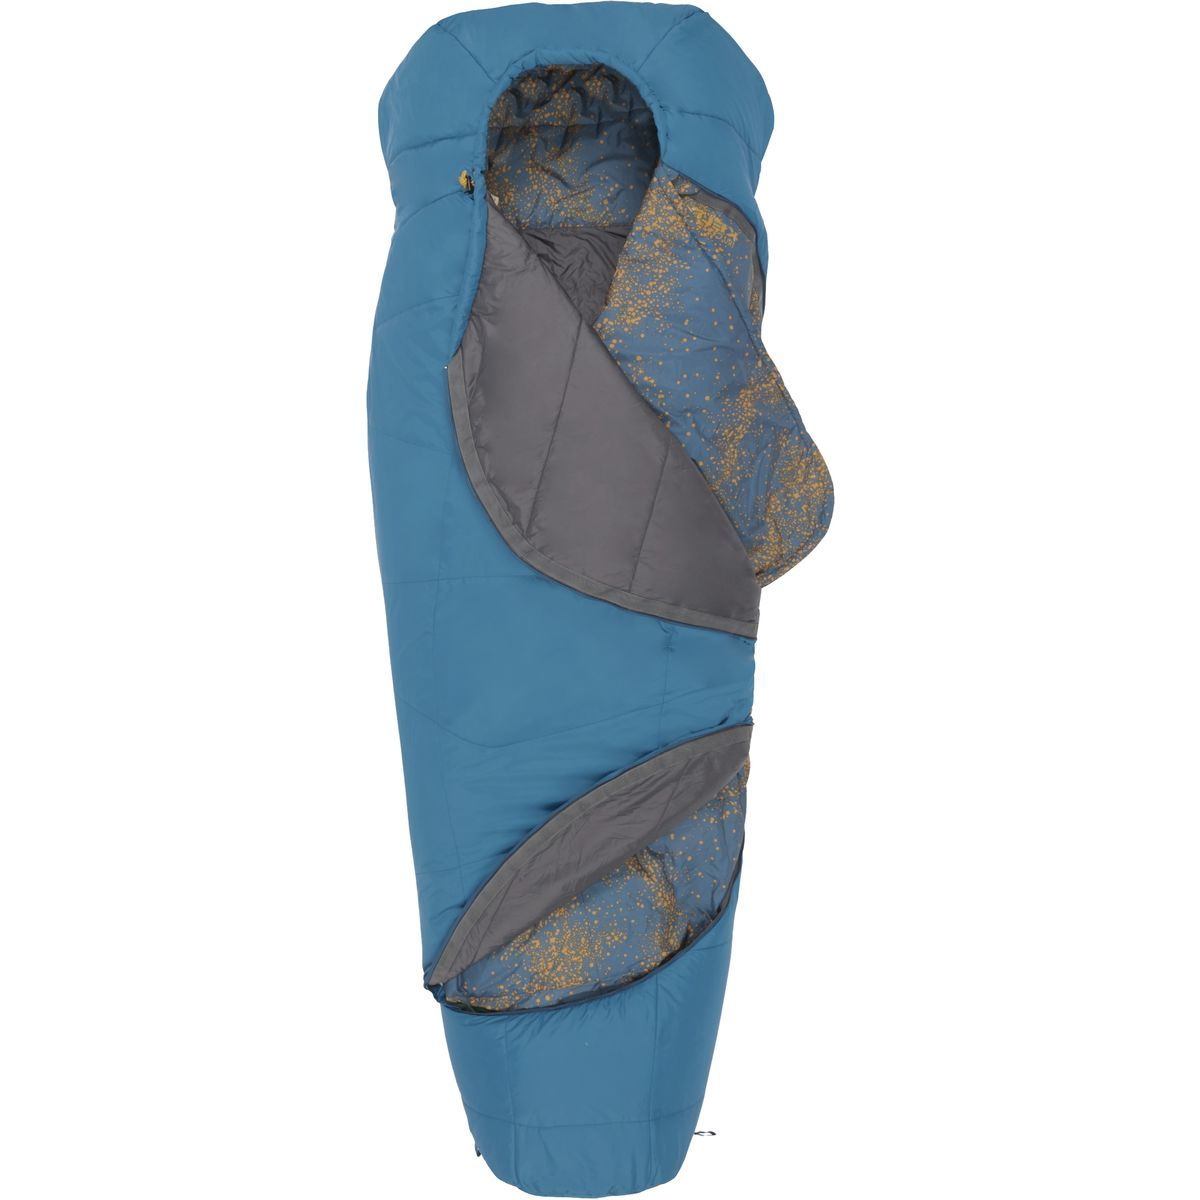 Kelty Tru.Comfort 20 Sleeping Bag: 20 Degree Synthetic - Men's